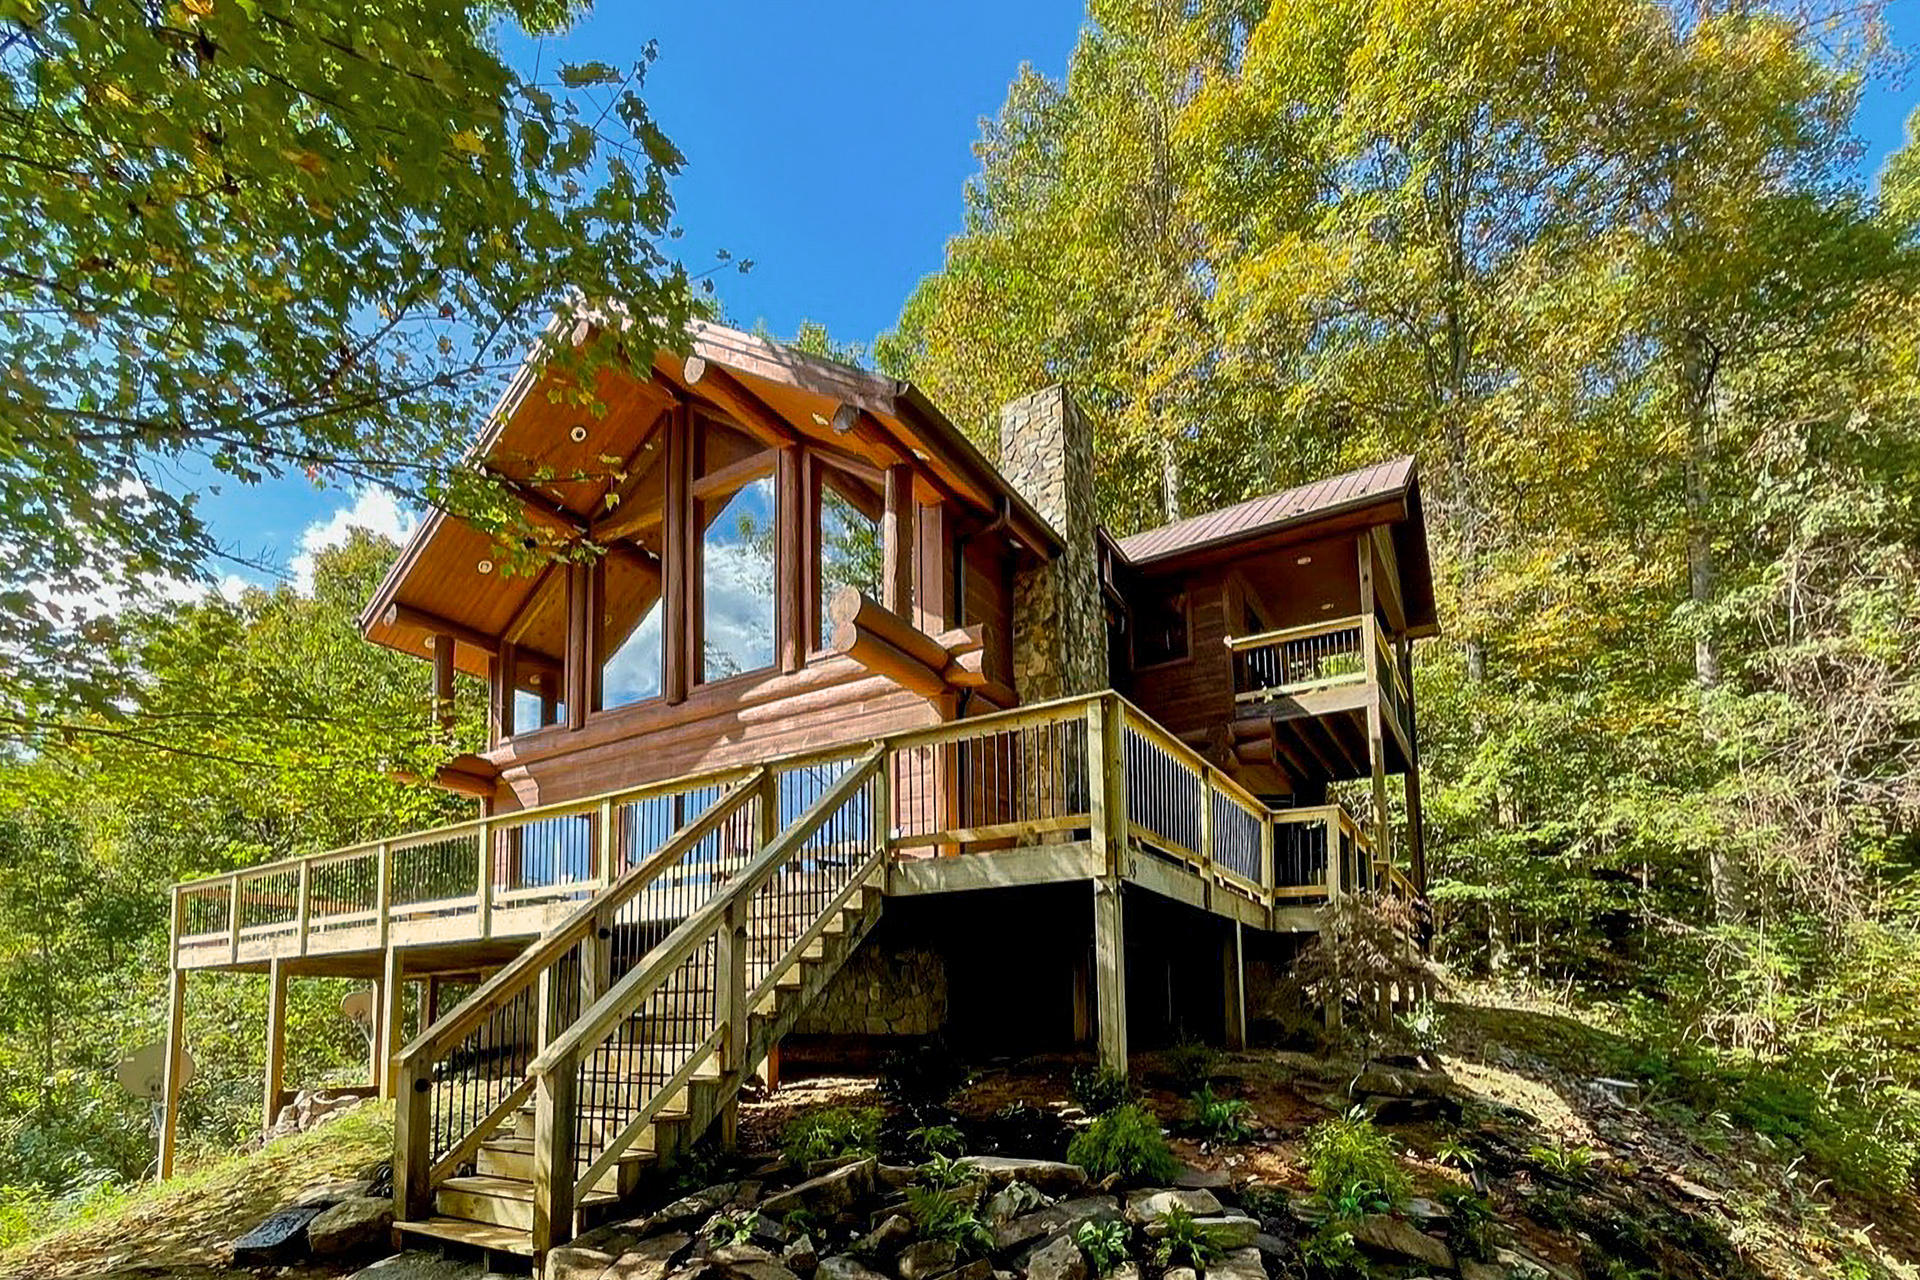 Cabin in the clouds vacation rental in nantahala nc for Smoky mountain nc cabin rentals